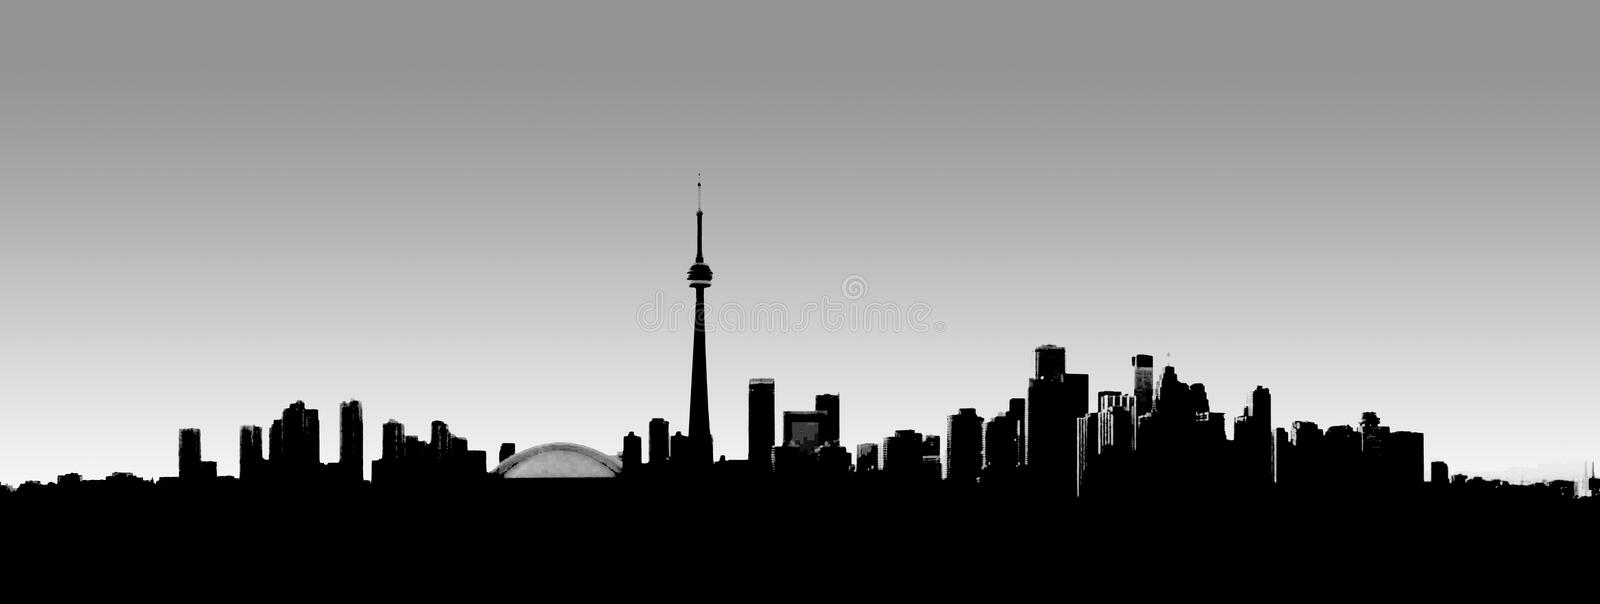 Crépuscule de Toronto illustration stock